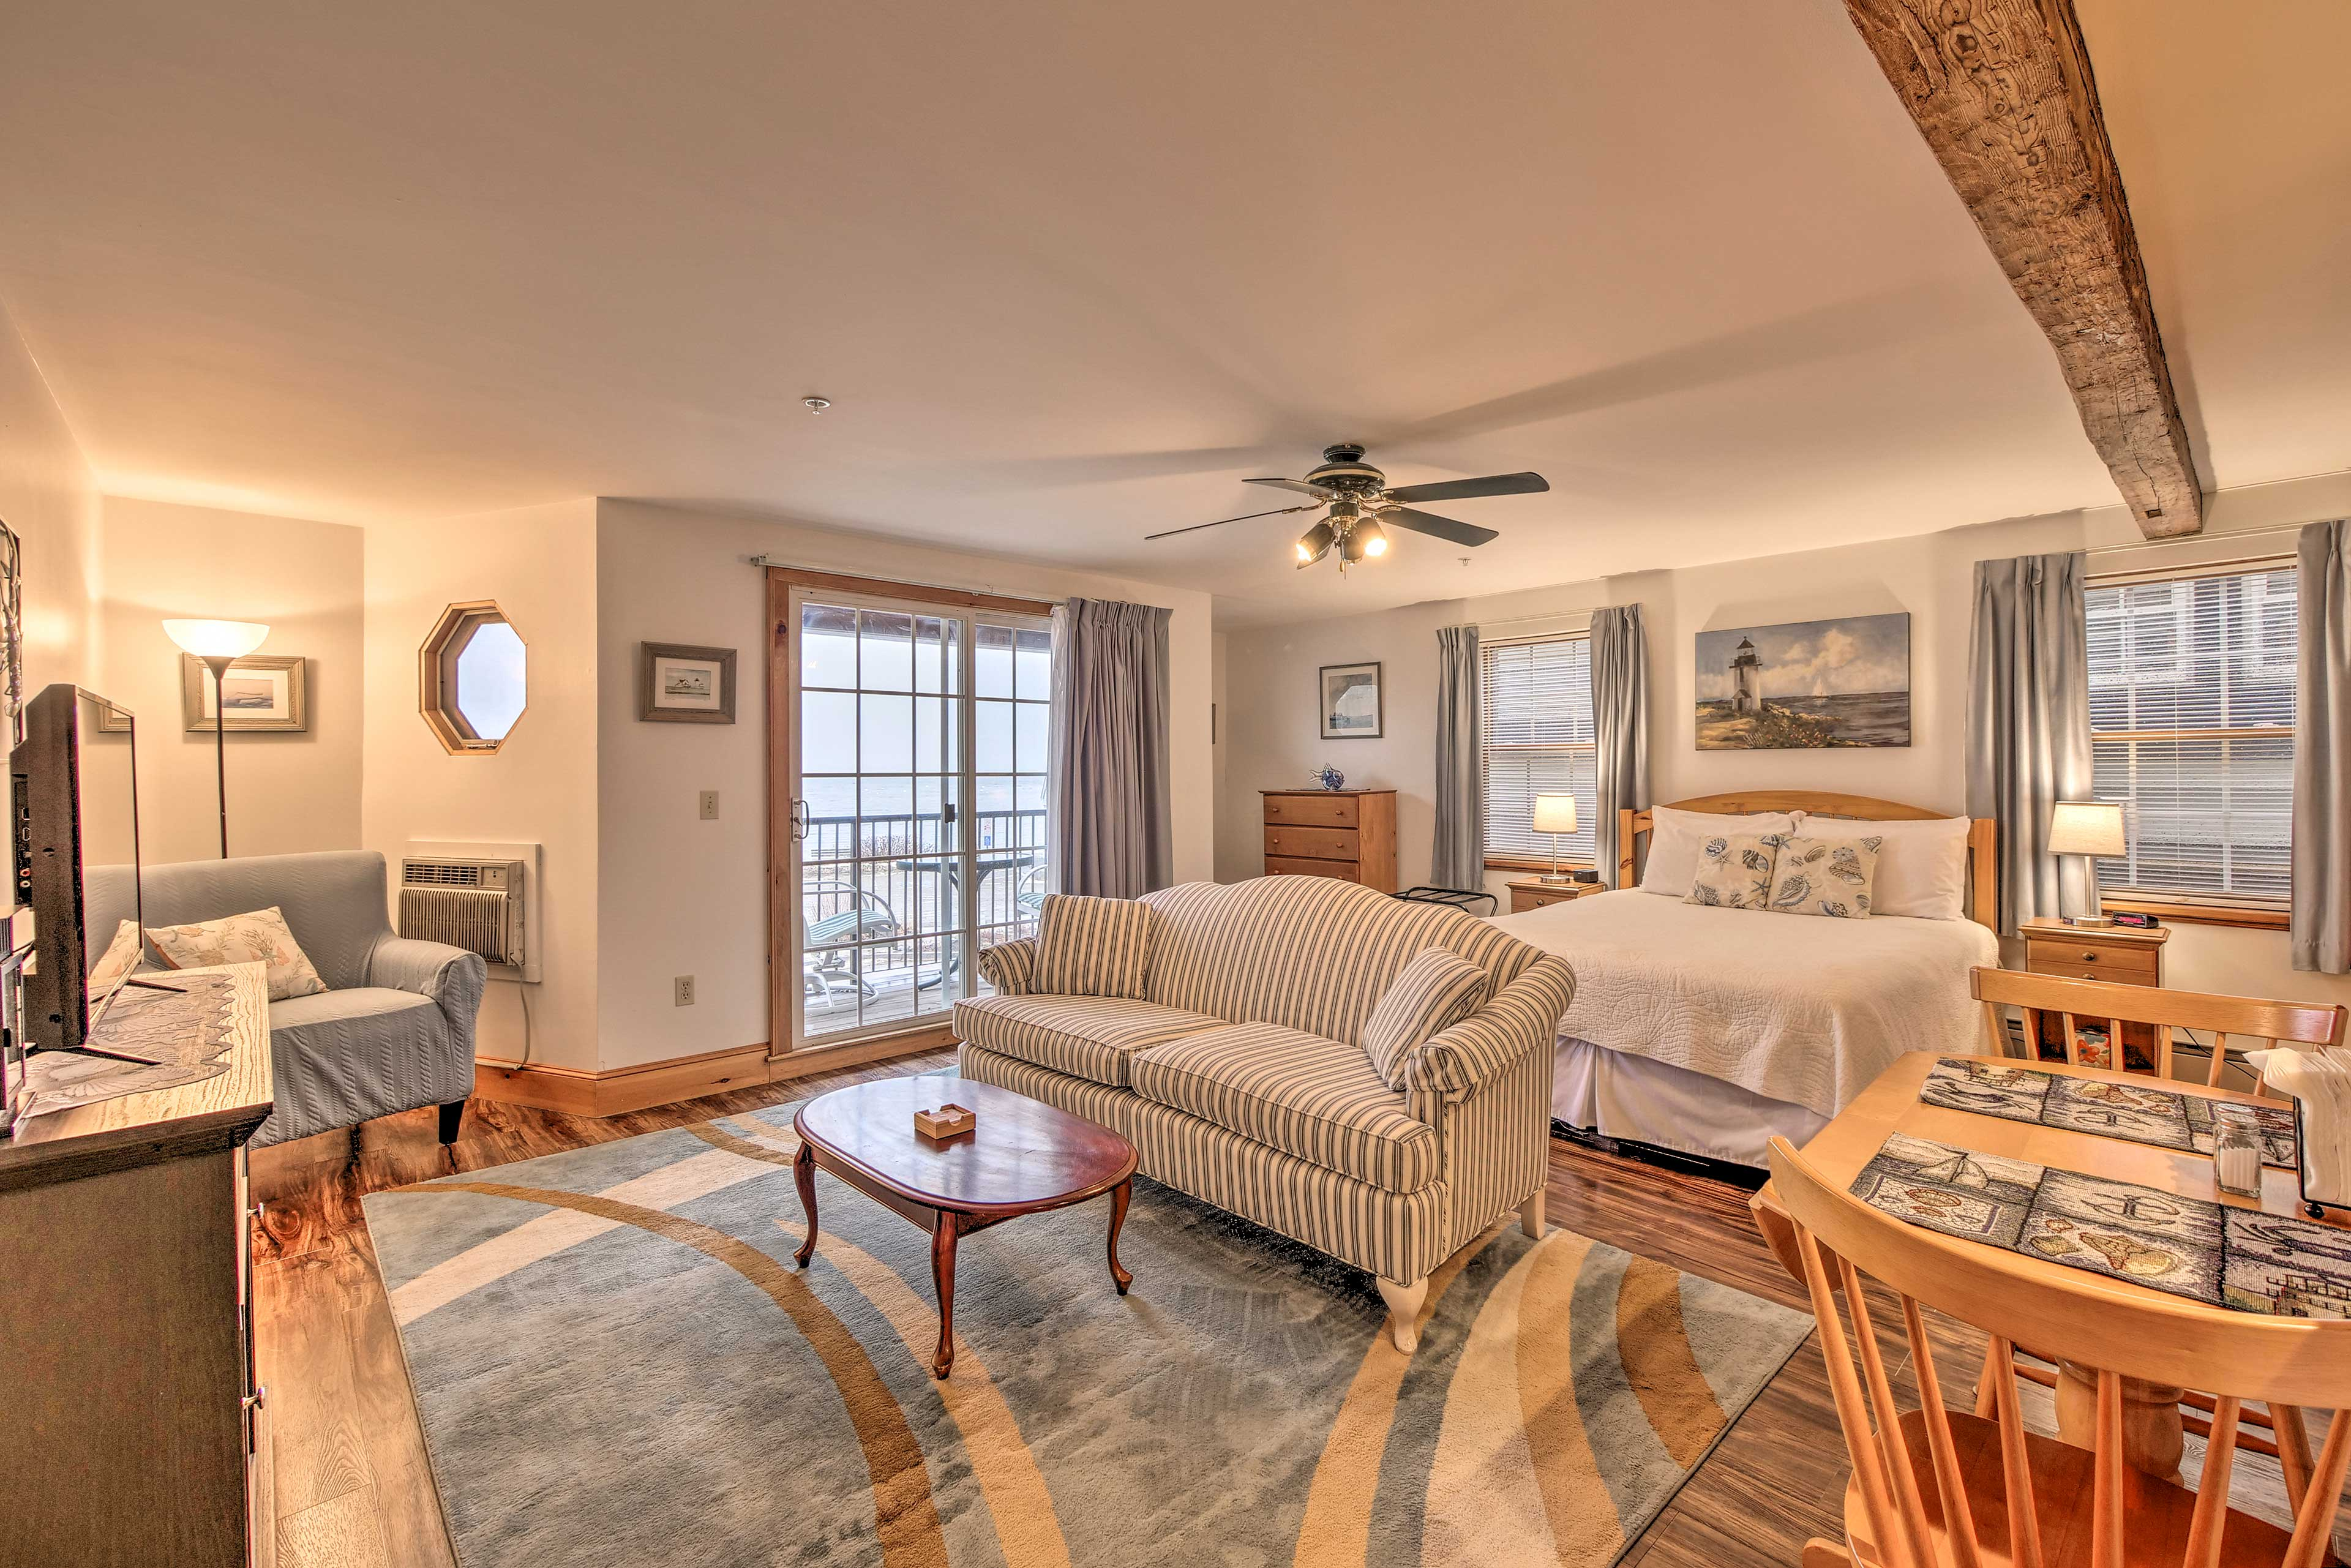 The charming studio has everything you'll need, with 1 queen bed & 1 full bath.